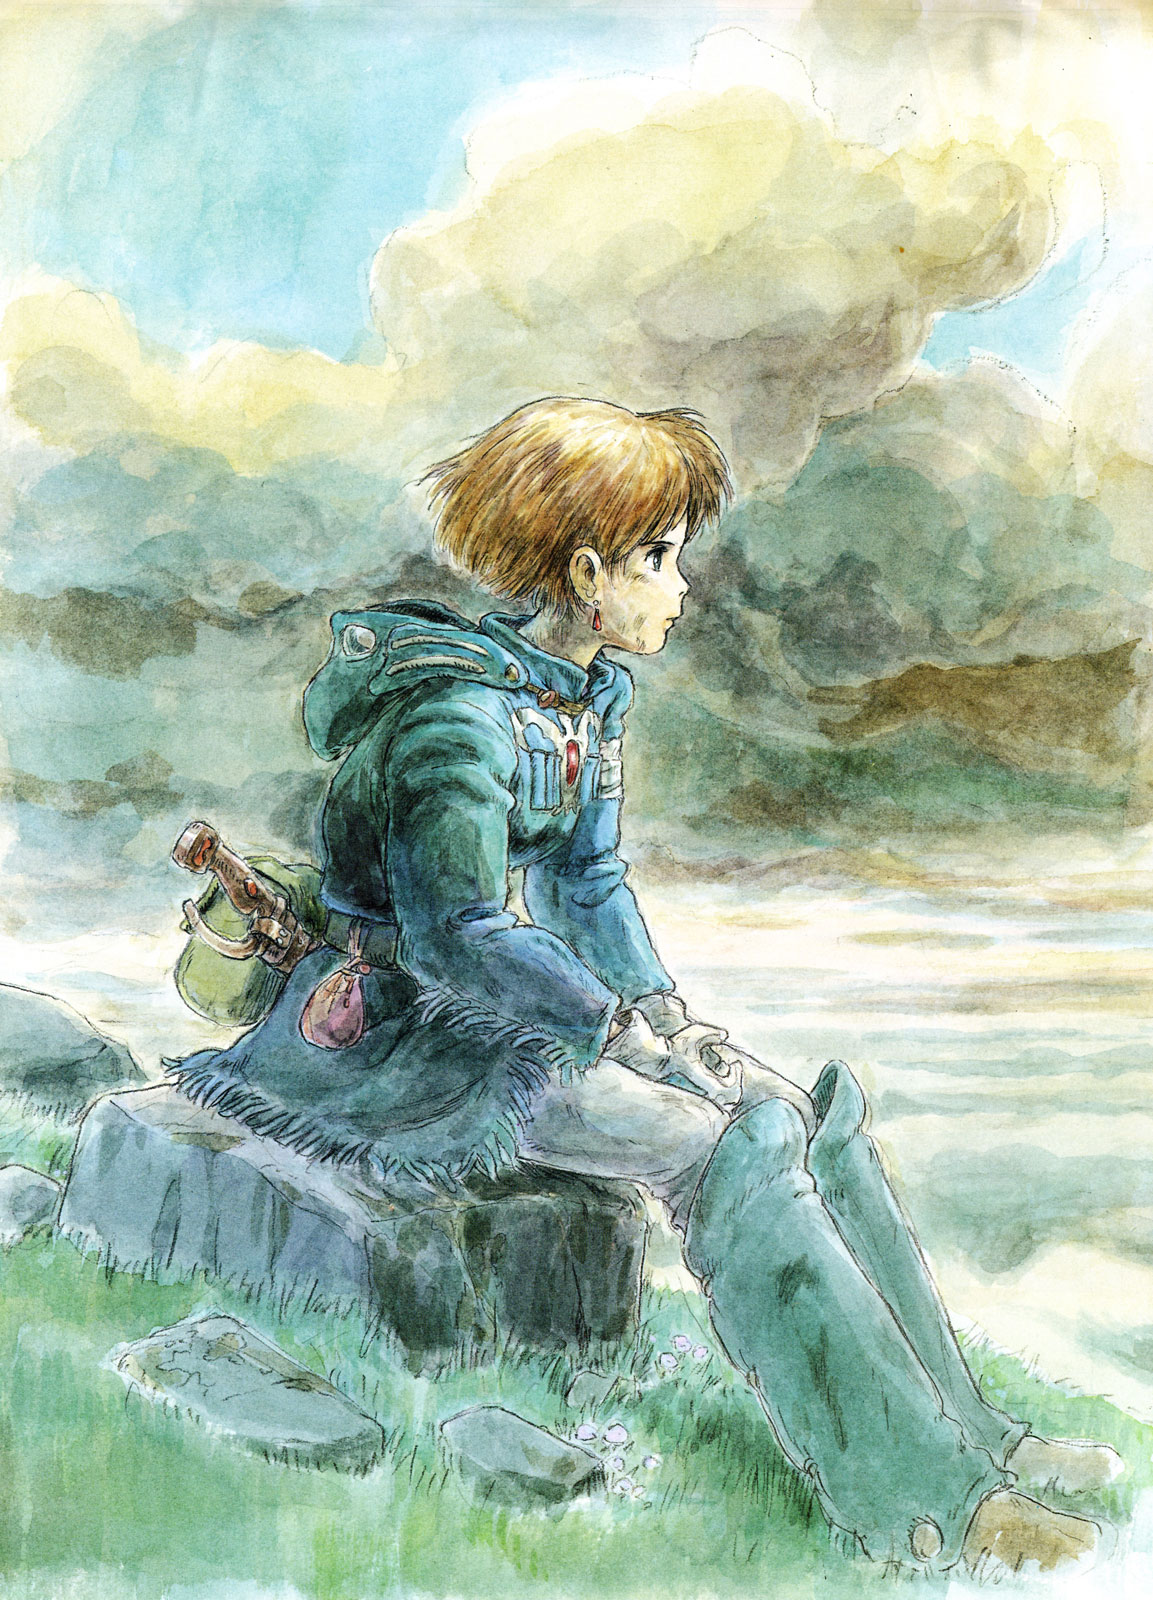 nausicaa_of_the_valley_of_the_wind_concept_art_character_32.jpg